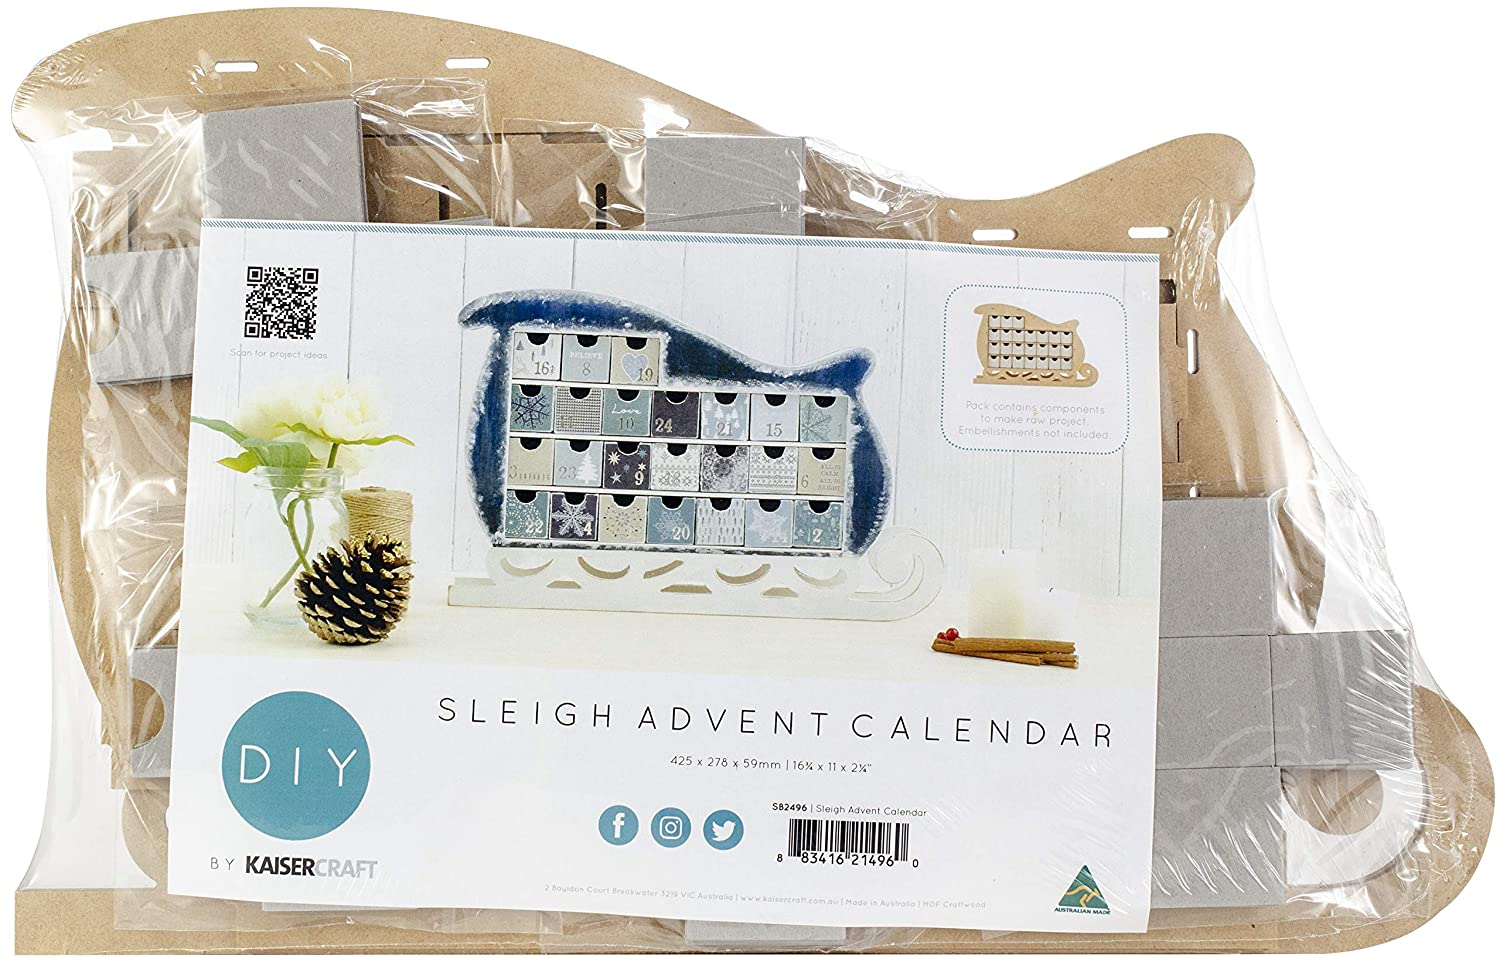 SB2496 Beyond The Page MDF Sleigh Advent Calendar-16.75X11X2.25 Kaisercraft 99195